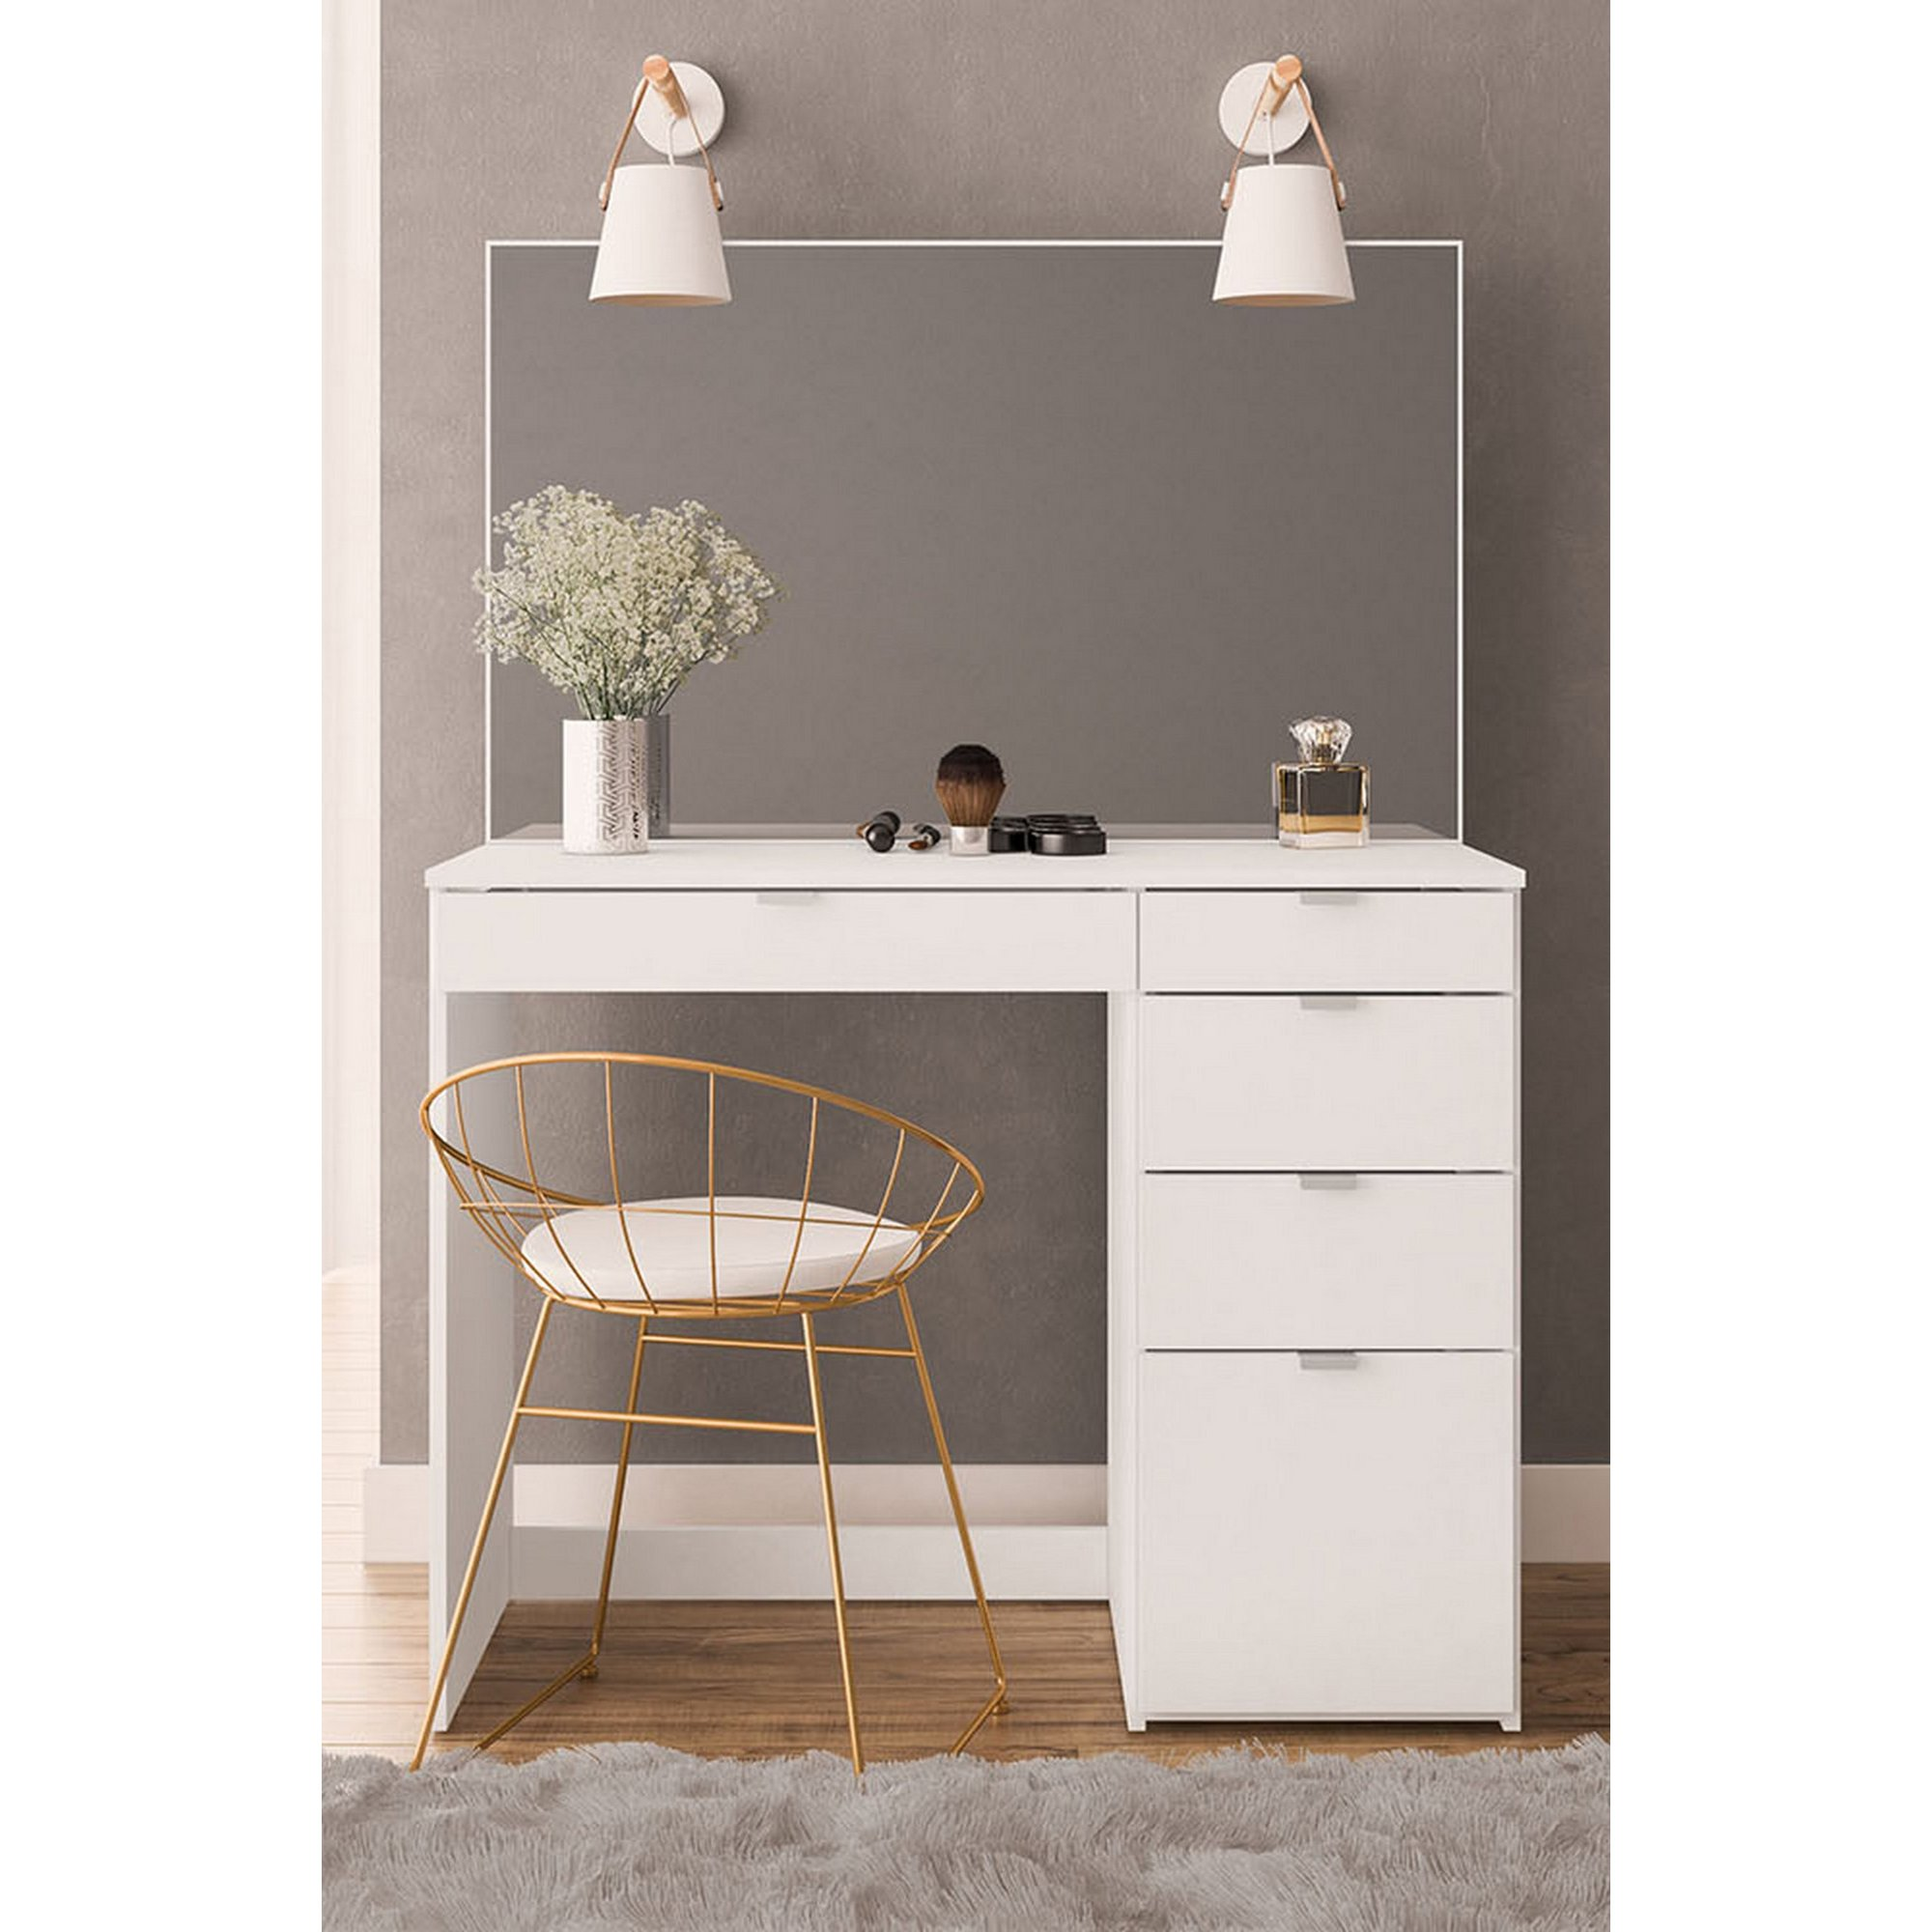 Image of Ava 5 Drawer Dressing Table and Mirror